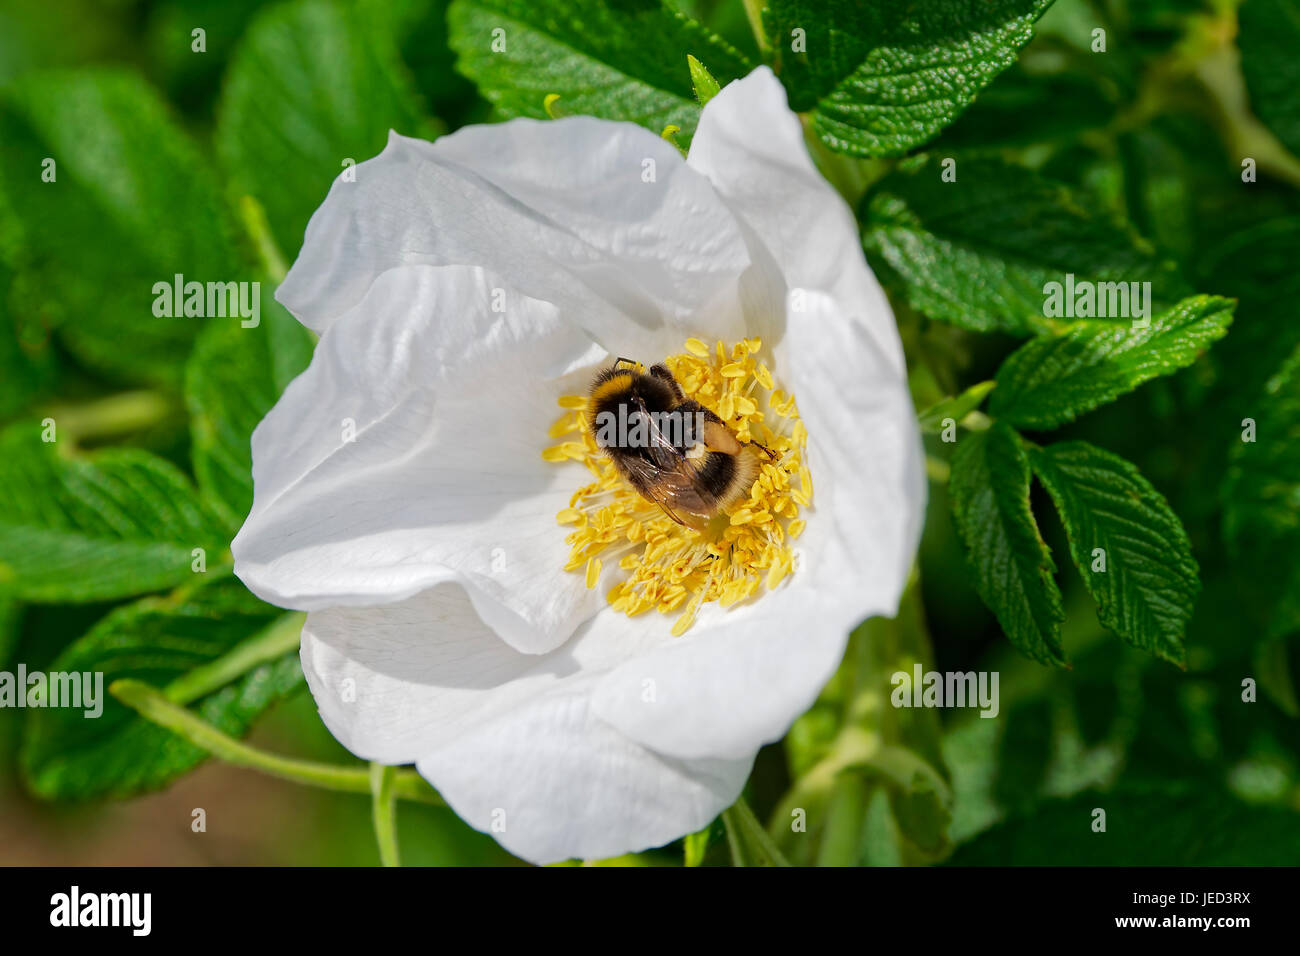 close up of a common White Tailed bee taking pollen from a large white Dog Rose flower in the sunshine Stock Photo